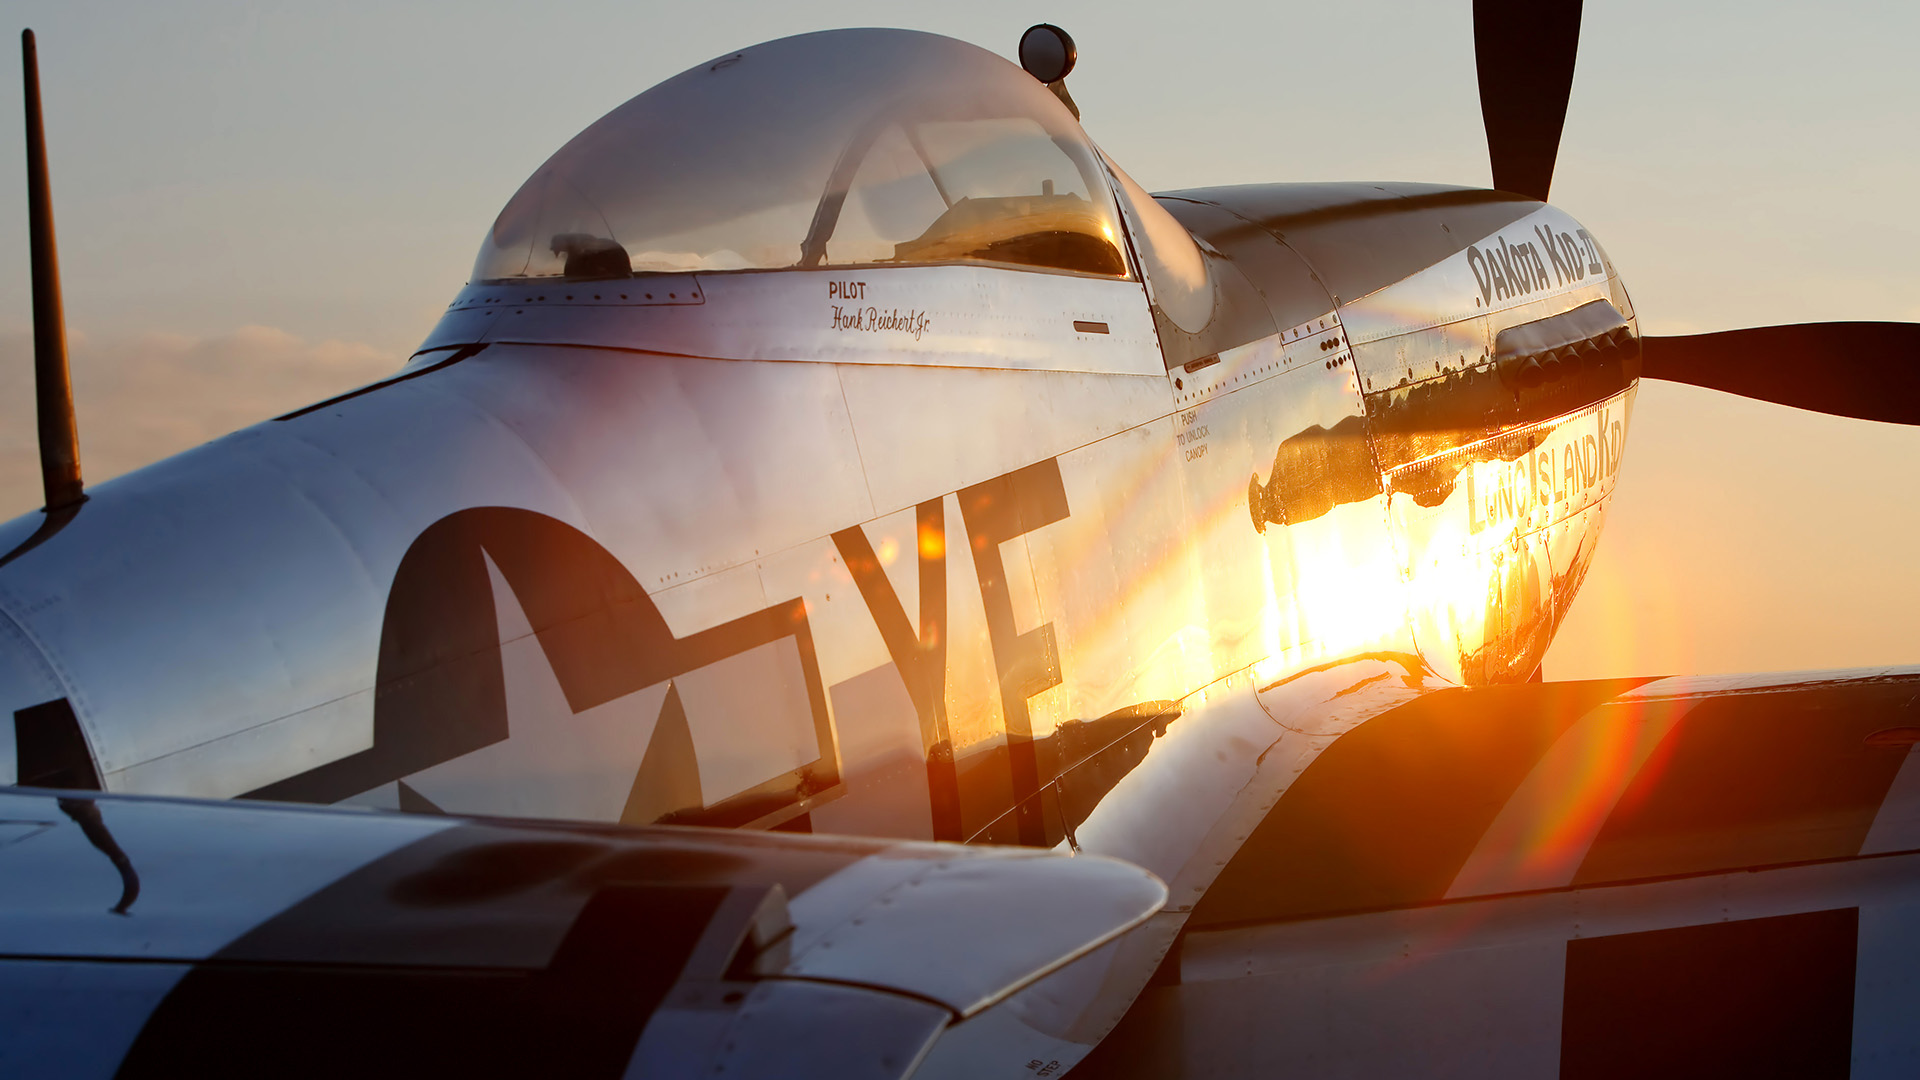 The p 51 mustang is a favorite of pilots and aviation enthusiasts owning one of these war machines is a huge commitment in many ways lee ray photo